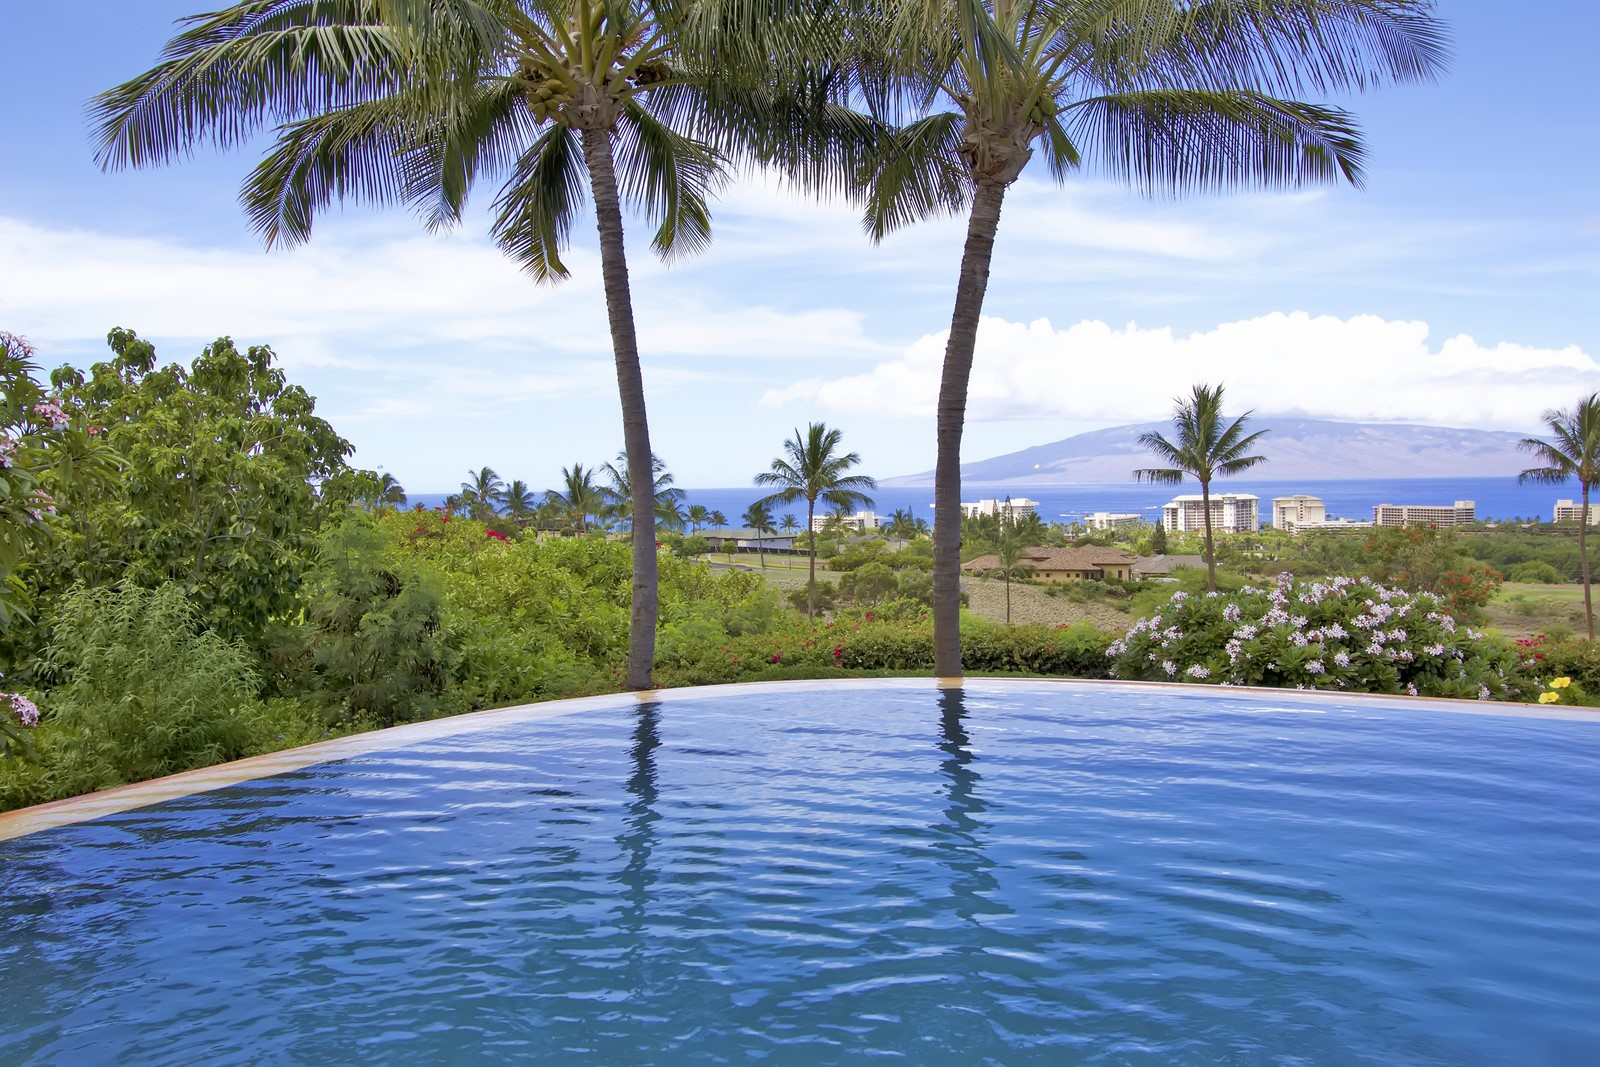 98 West Mahi Pua Place - Infinity Pool